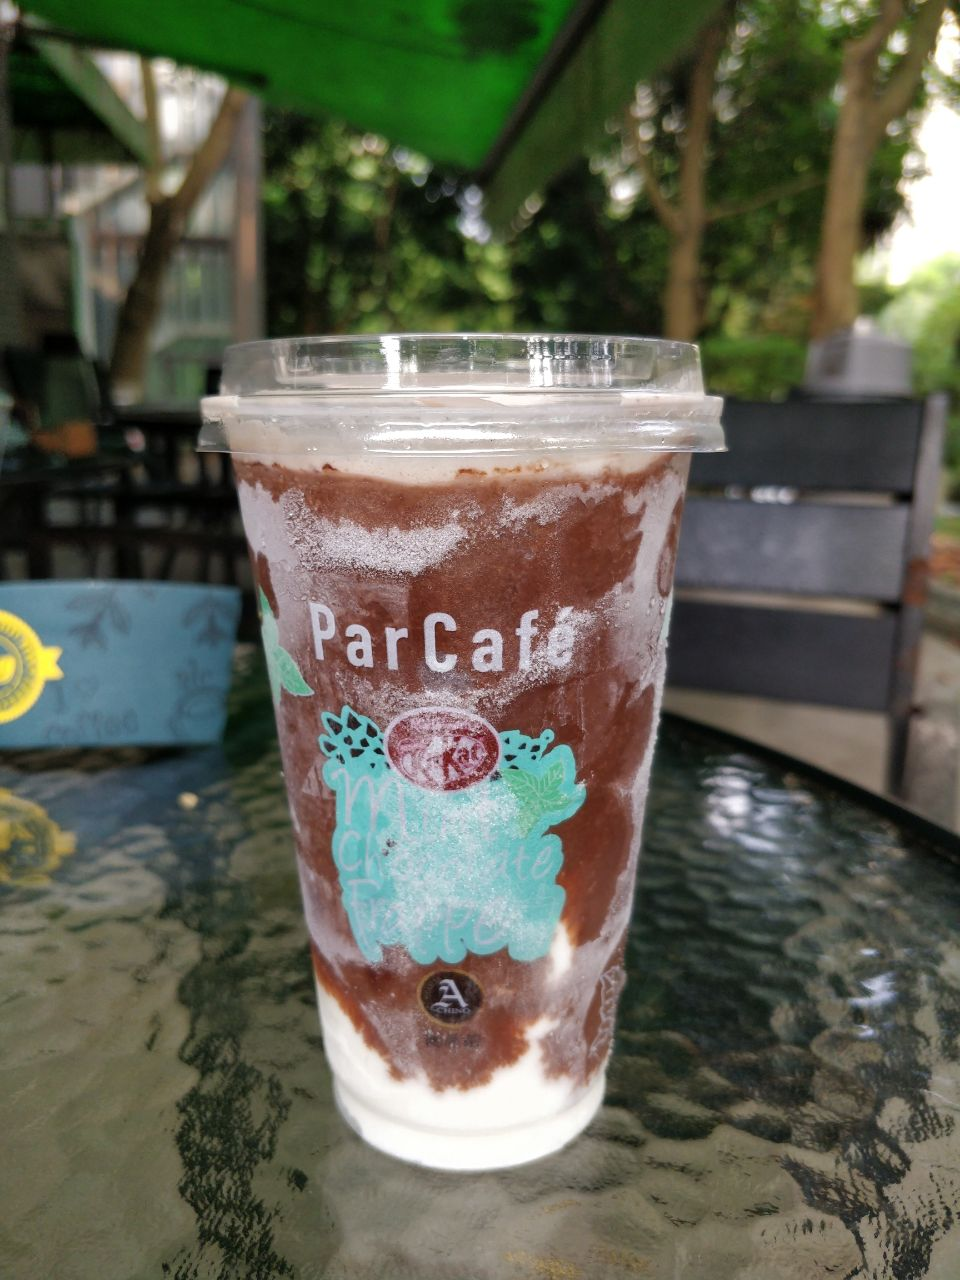 Family Mart ParCafe Mint Chocolate Drink